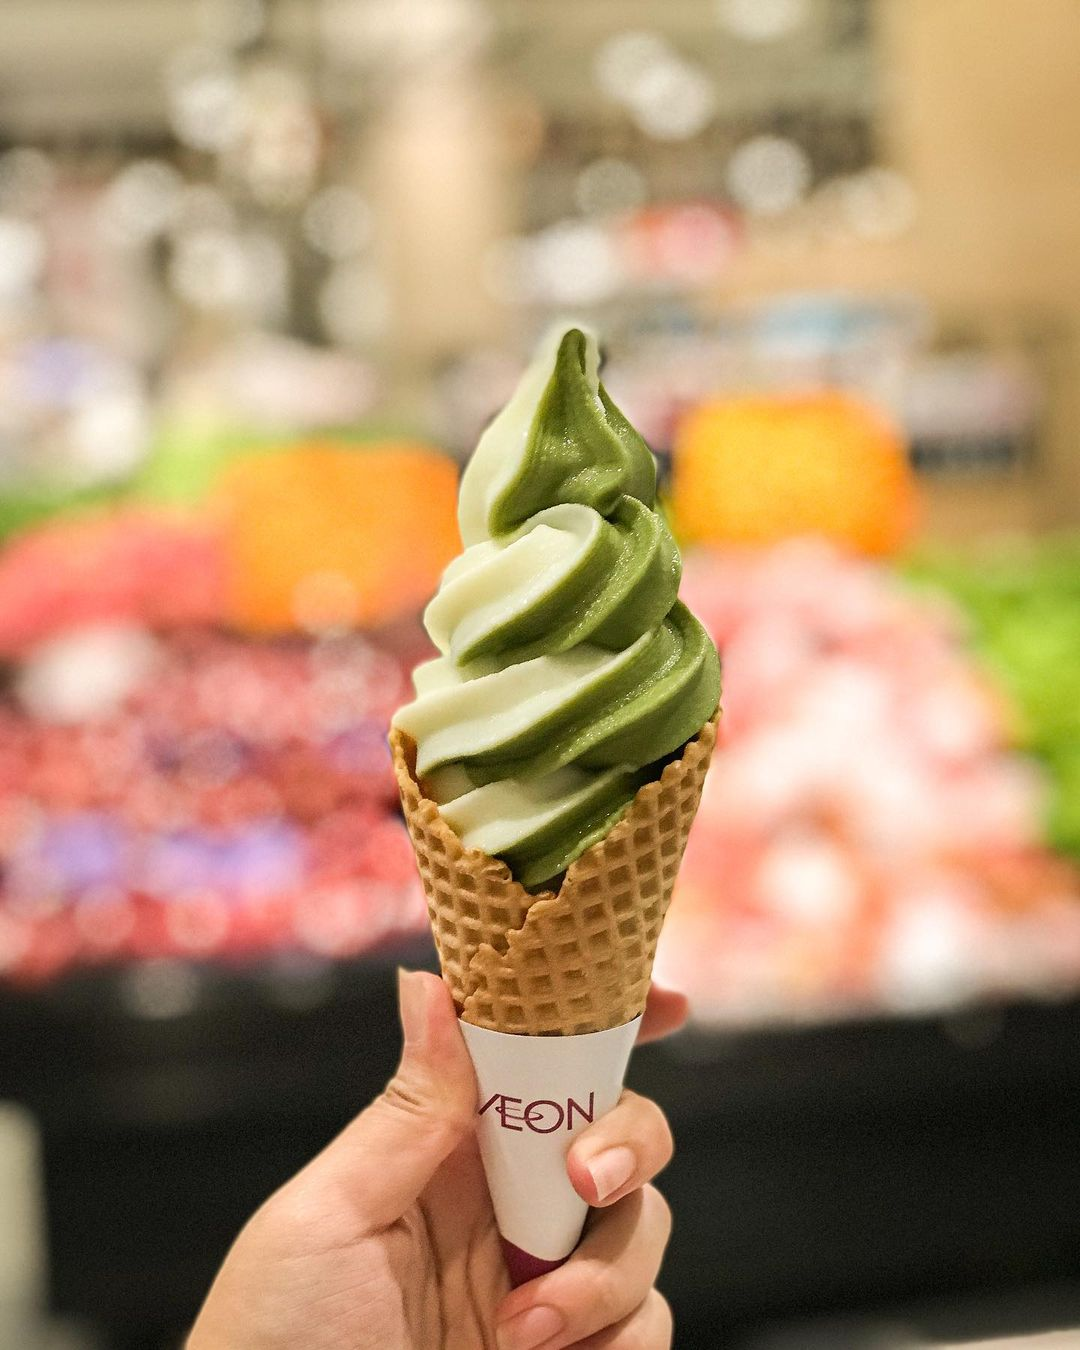 jakarta supermarkets with imported food - aeon supermarket ice cream